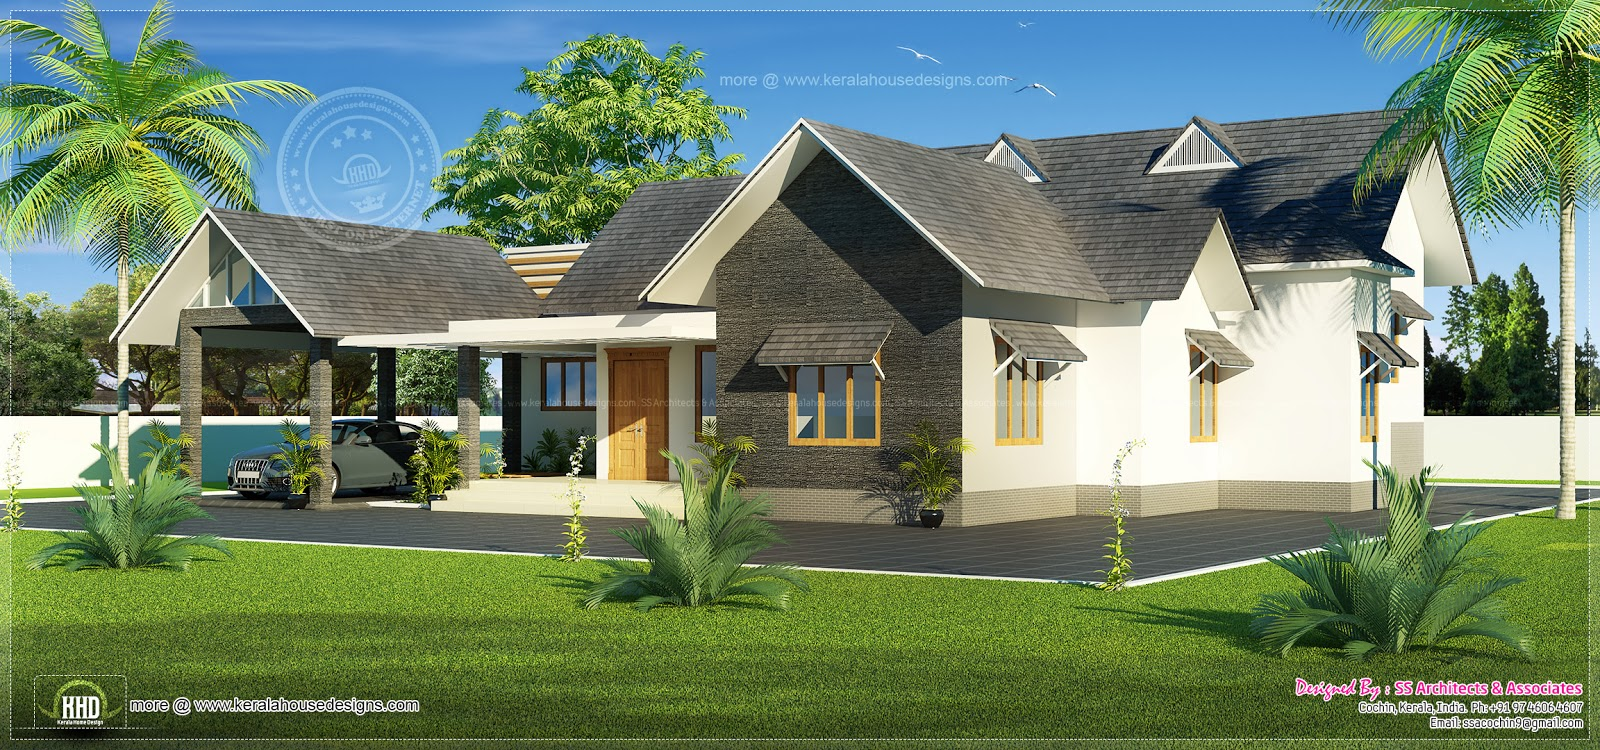 Bungalow House Design In 2051 Kerala Home Design